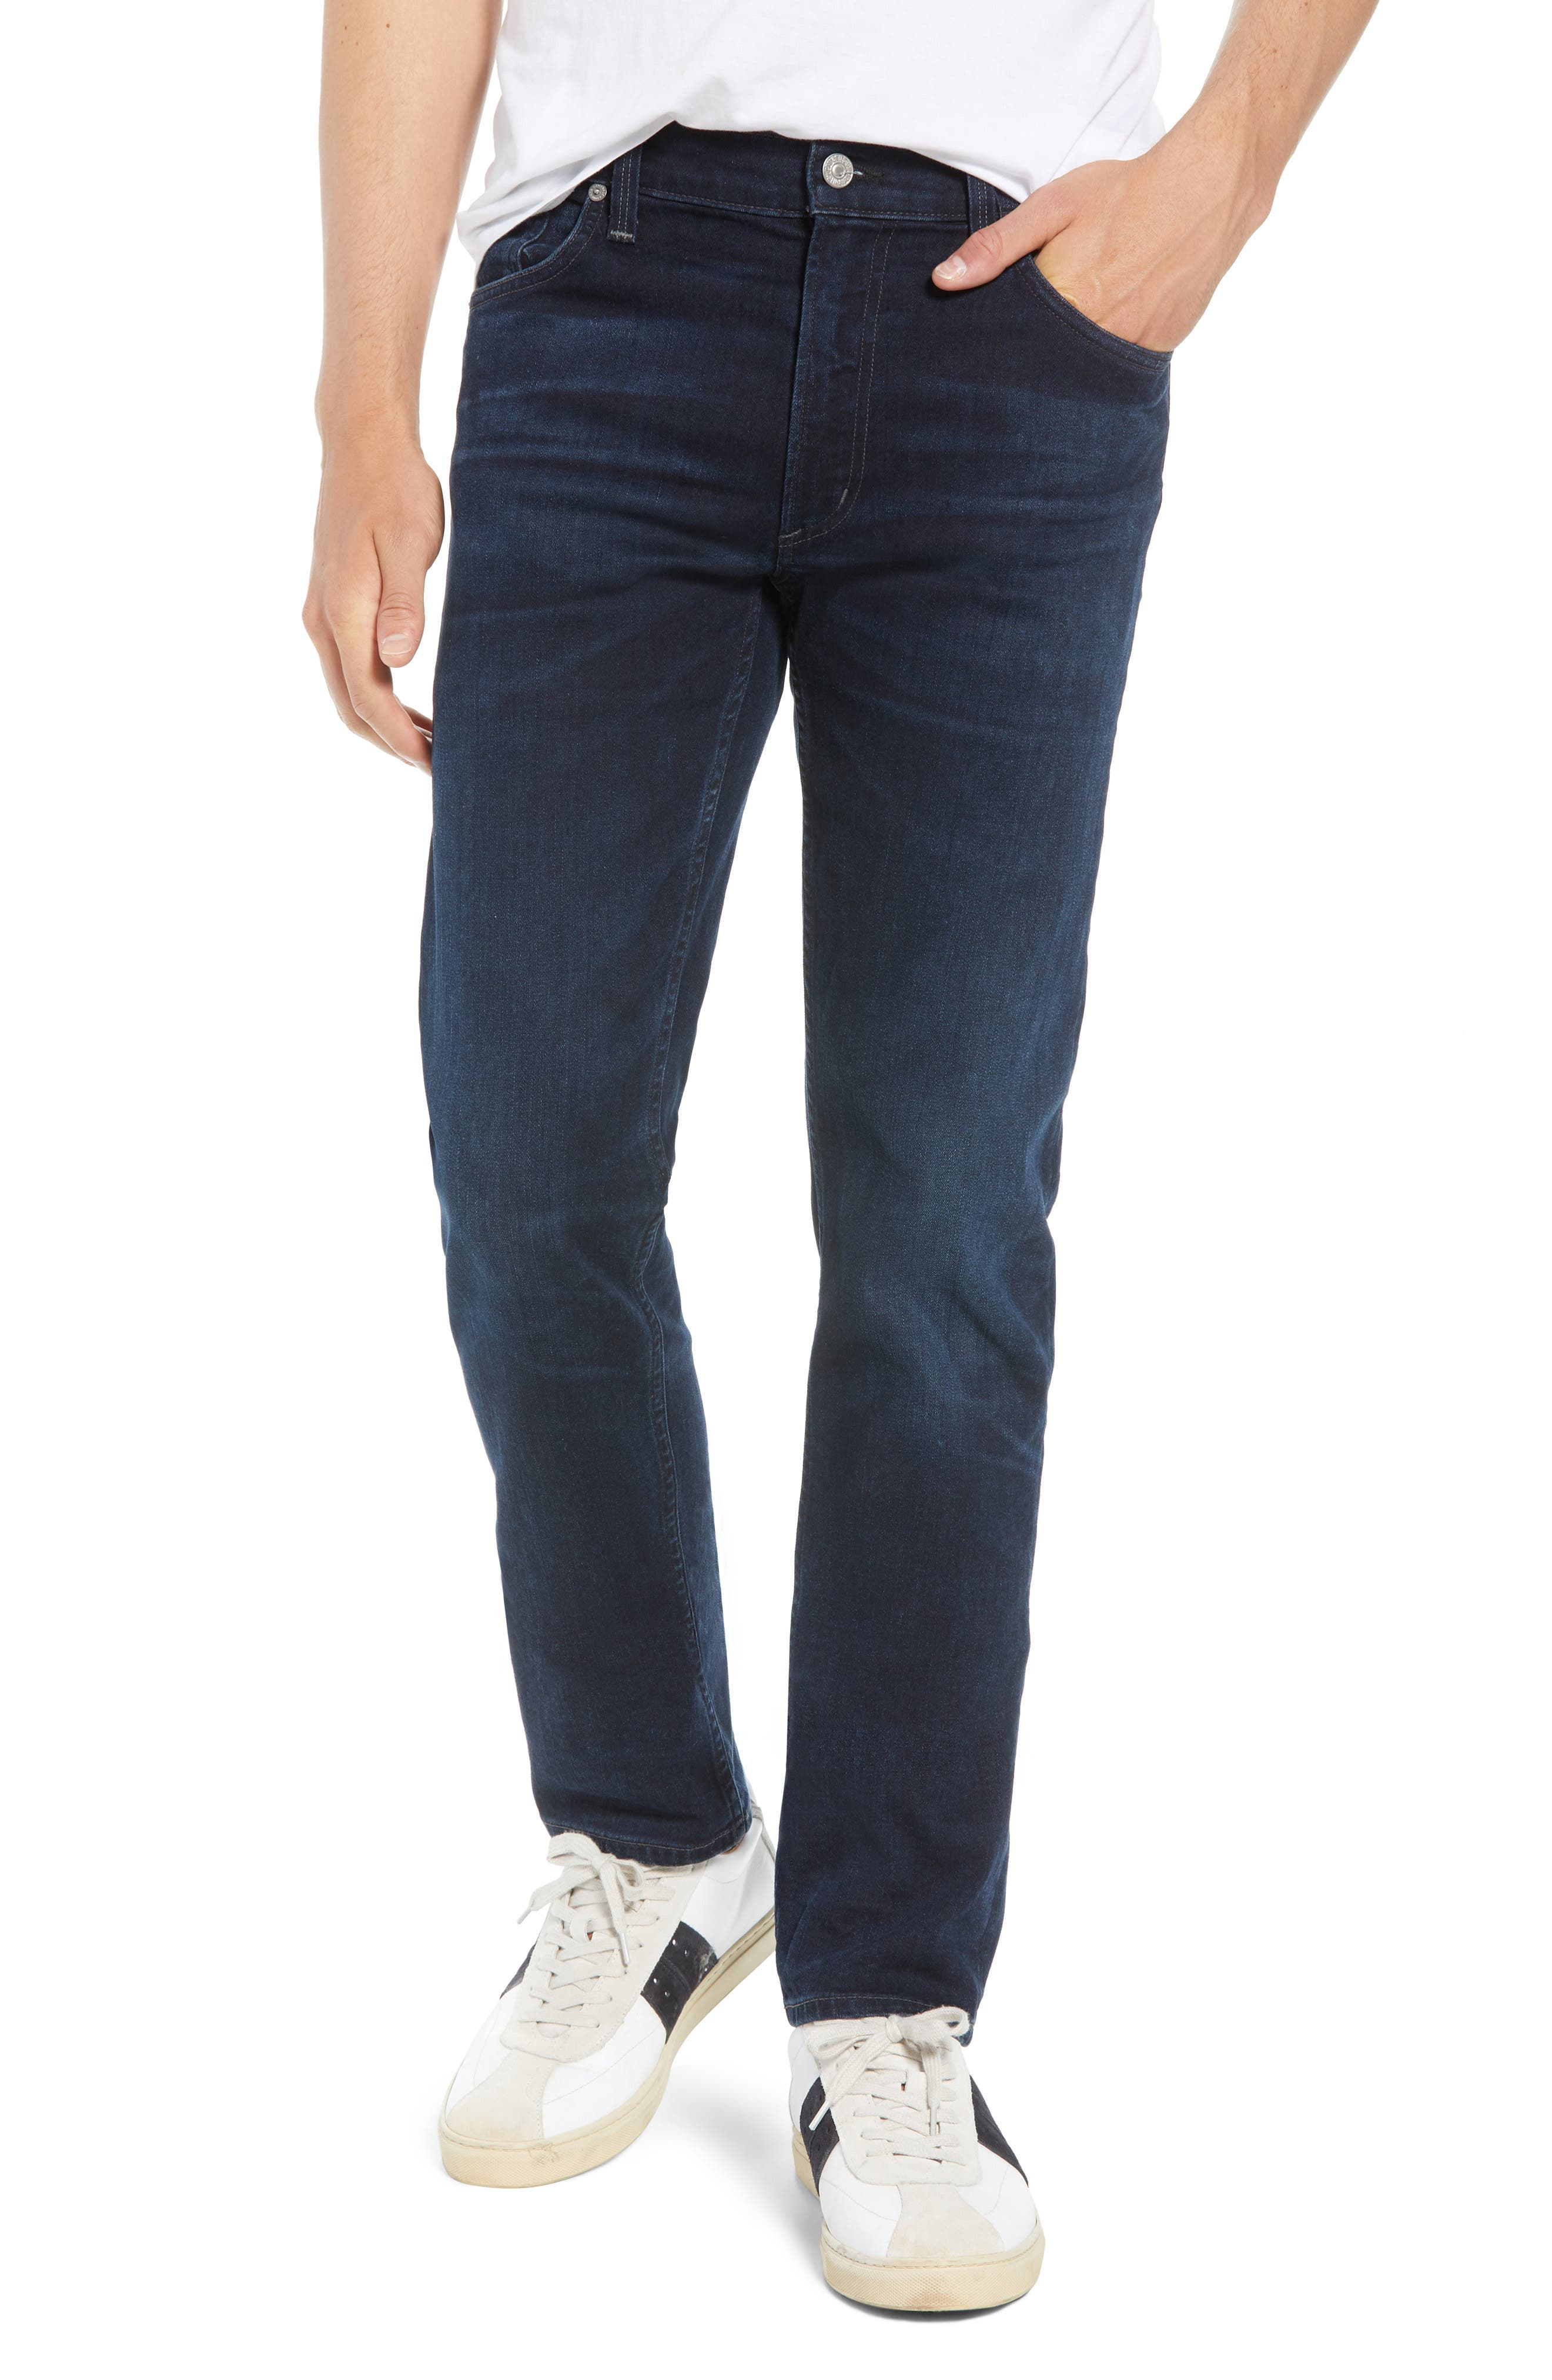 Bowery Slim Fit Jeans,                         Main,                         color, 407